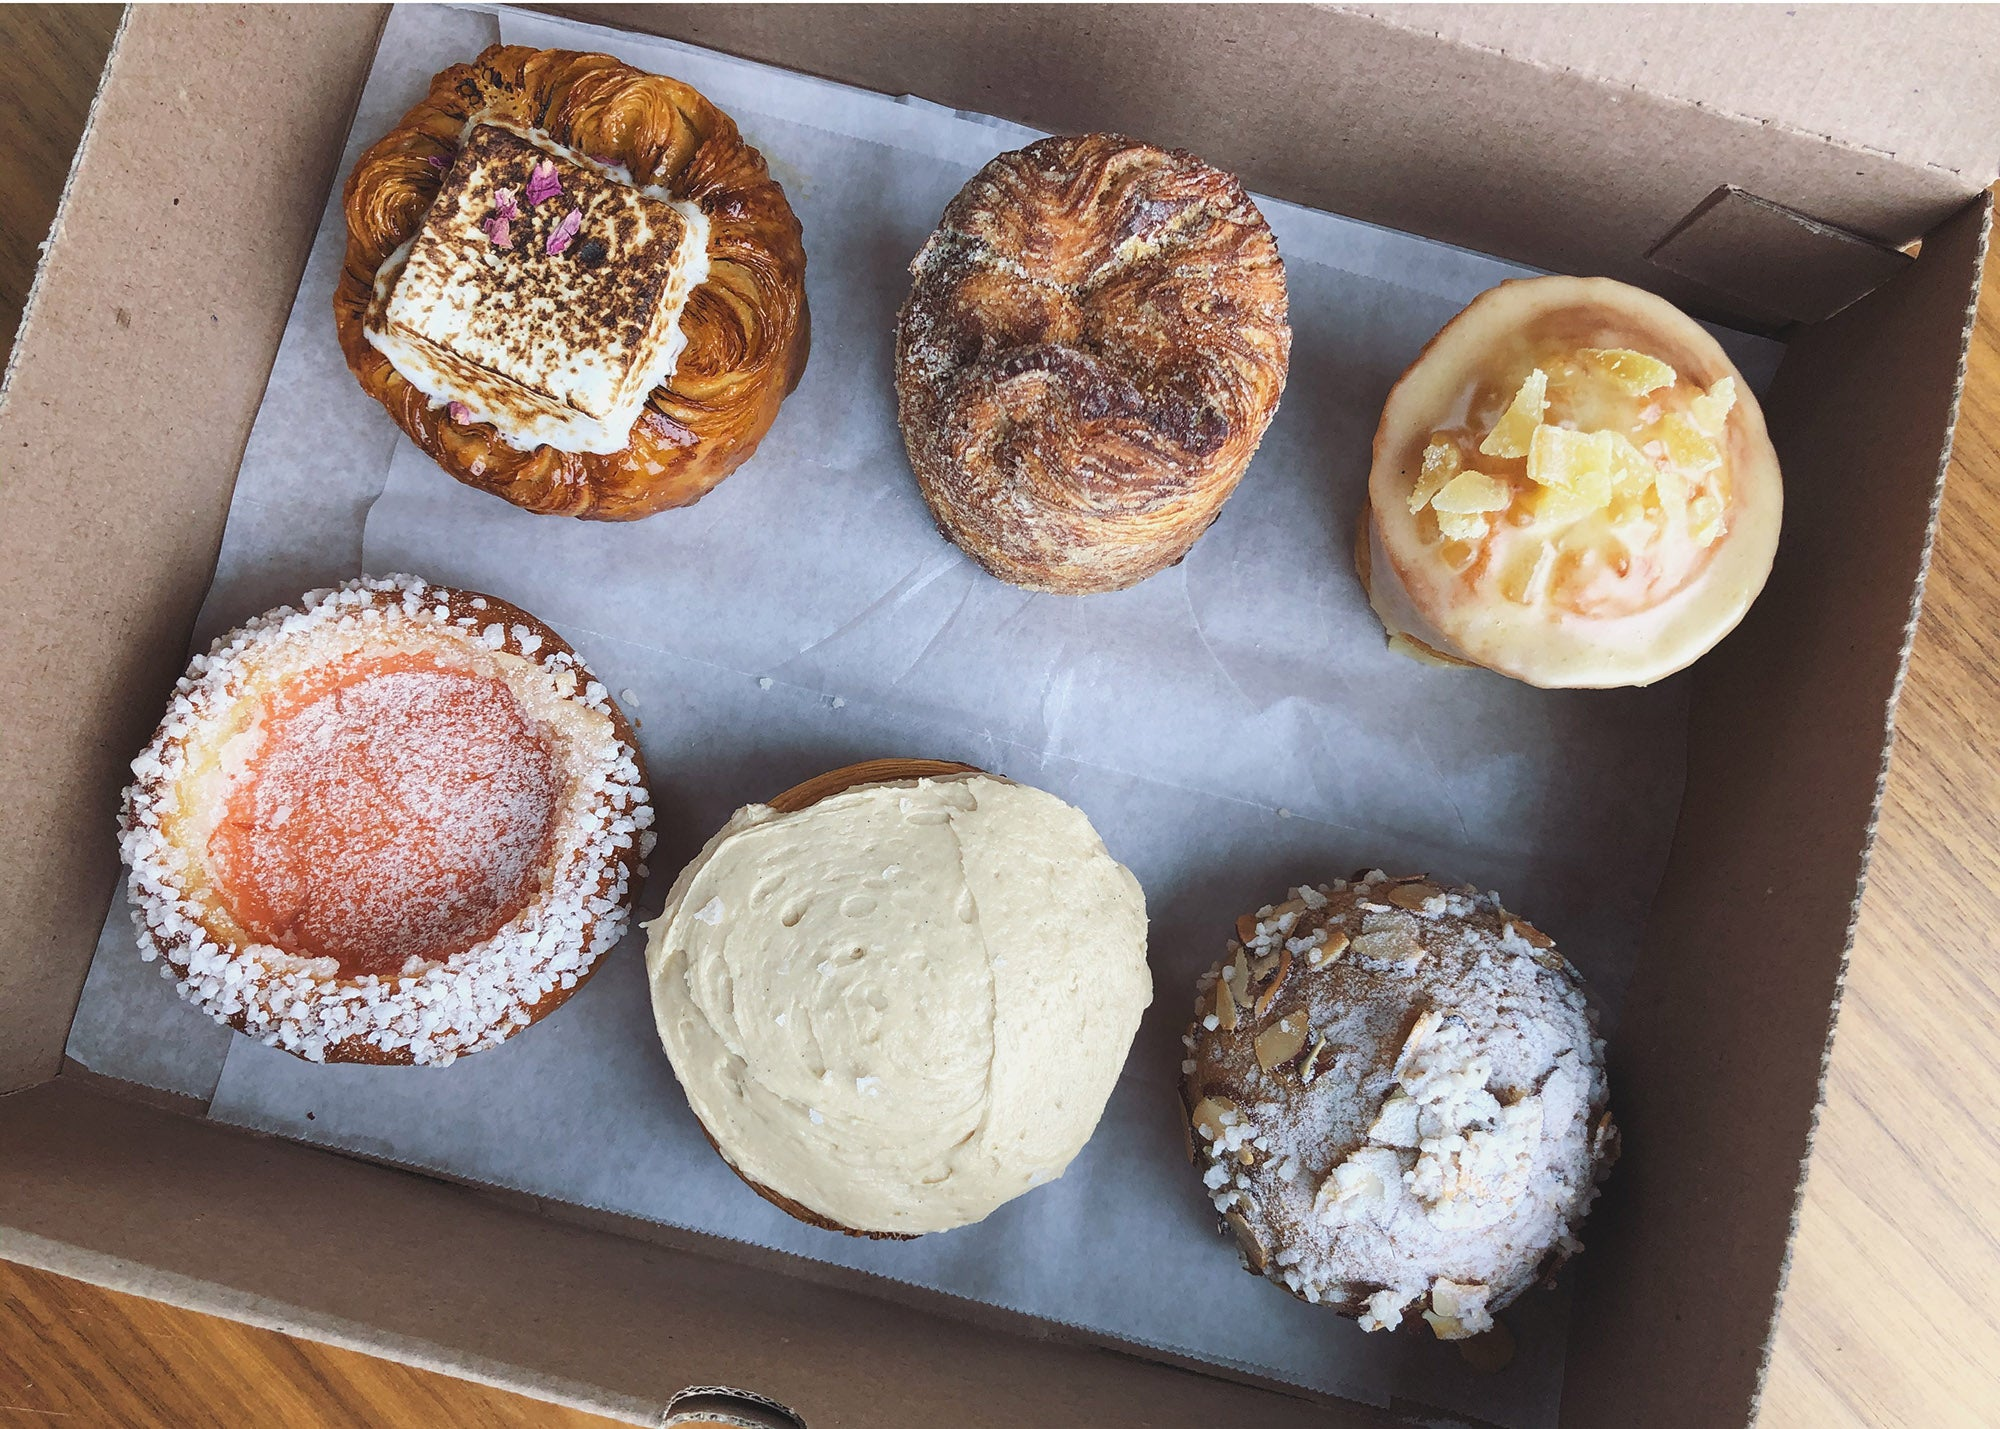 Mother's Day pastries from Cafe Beatrice